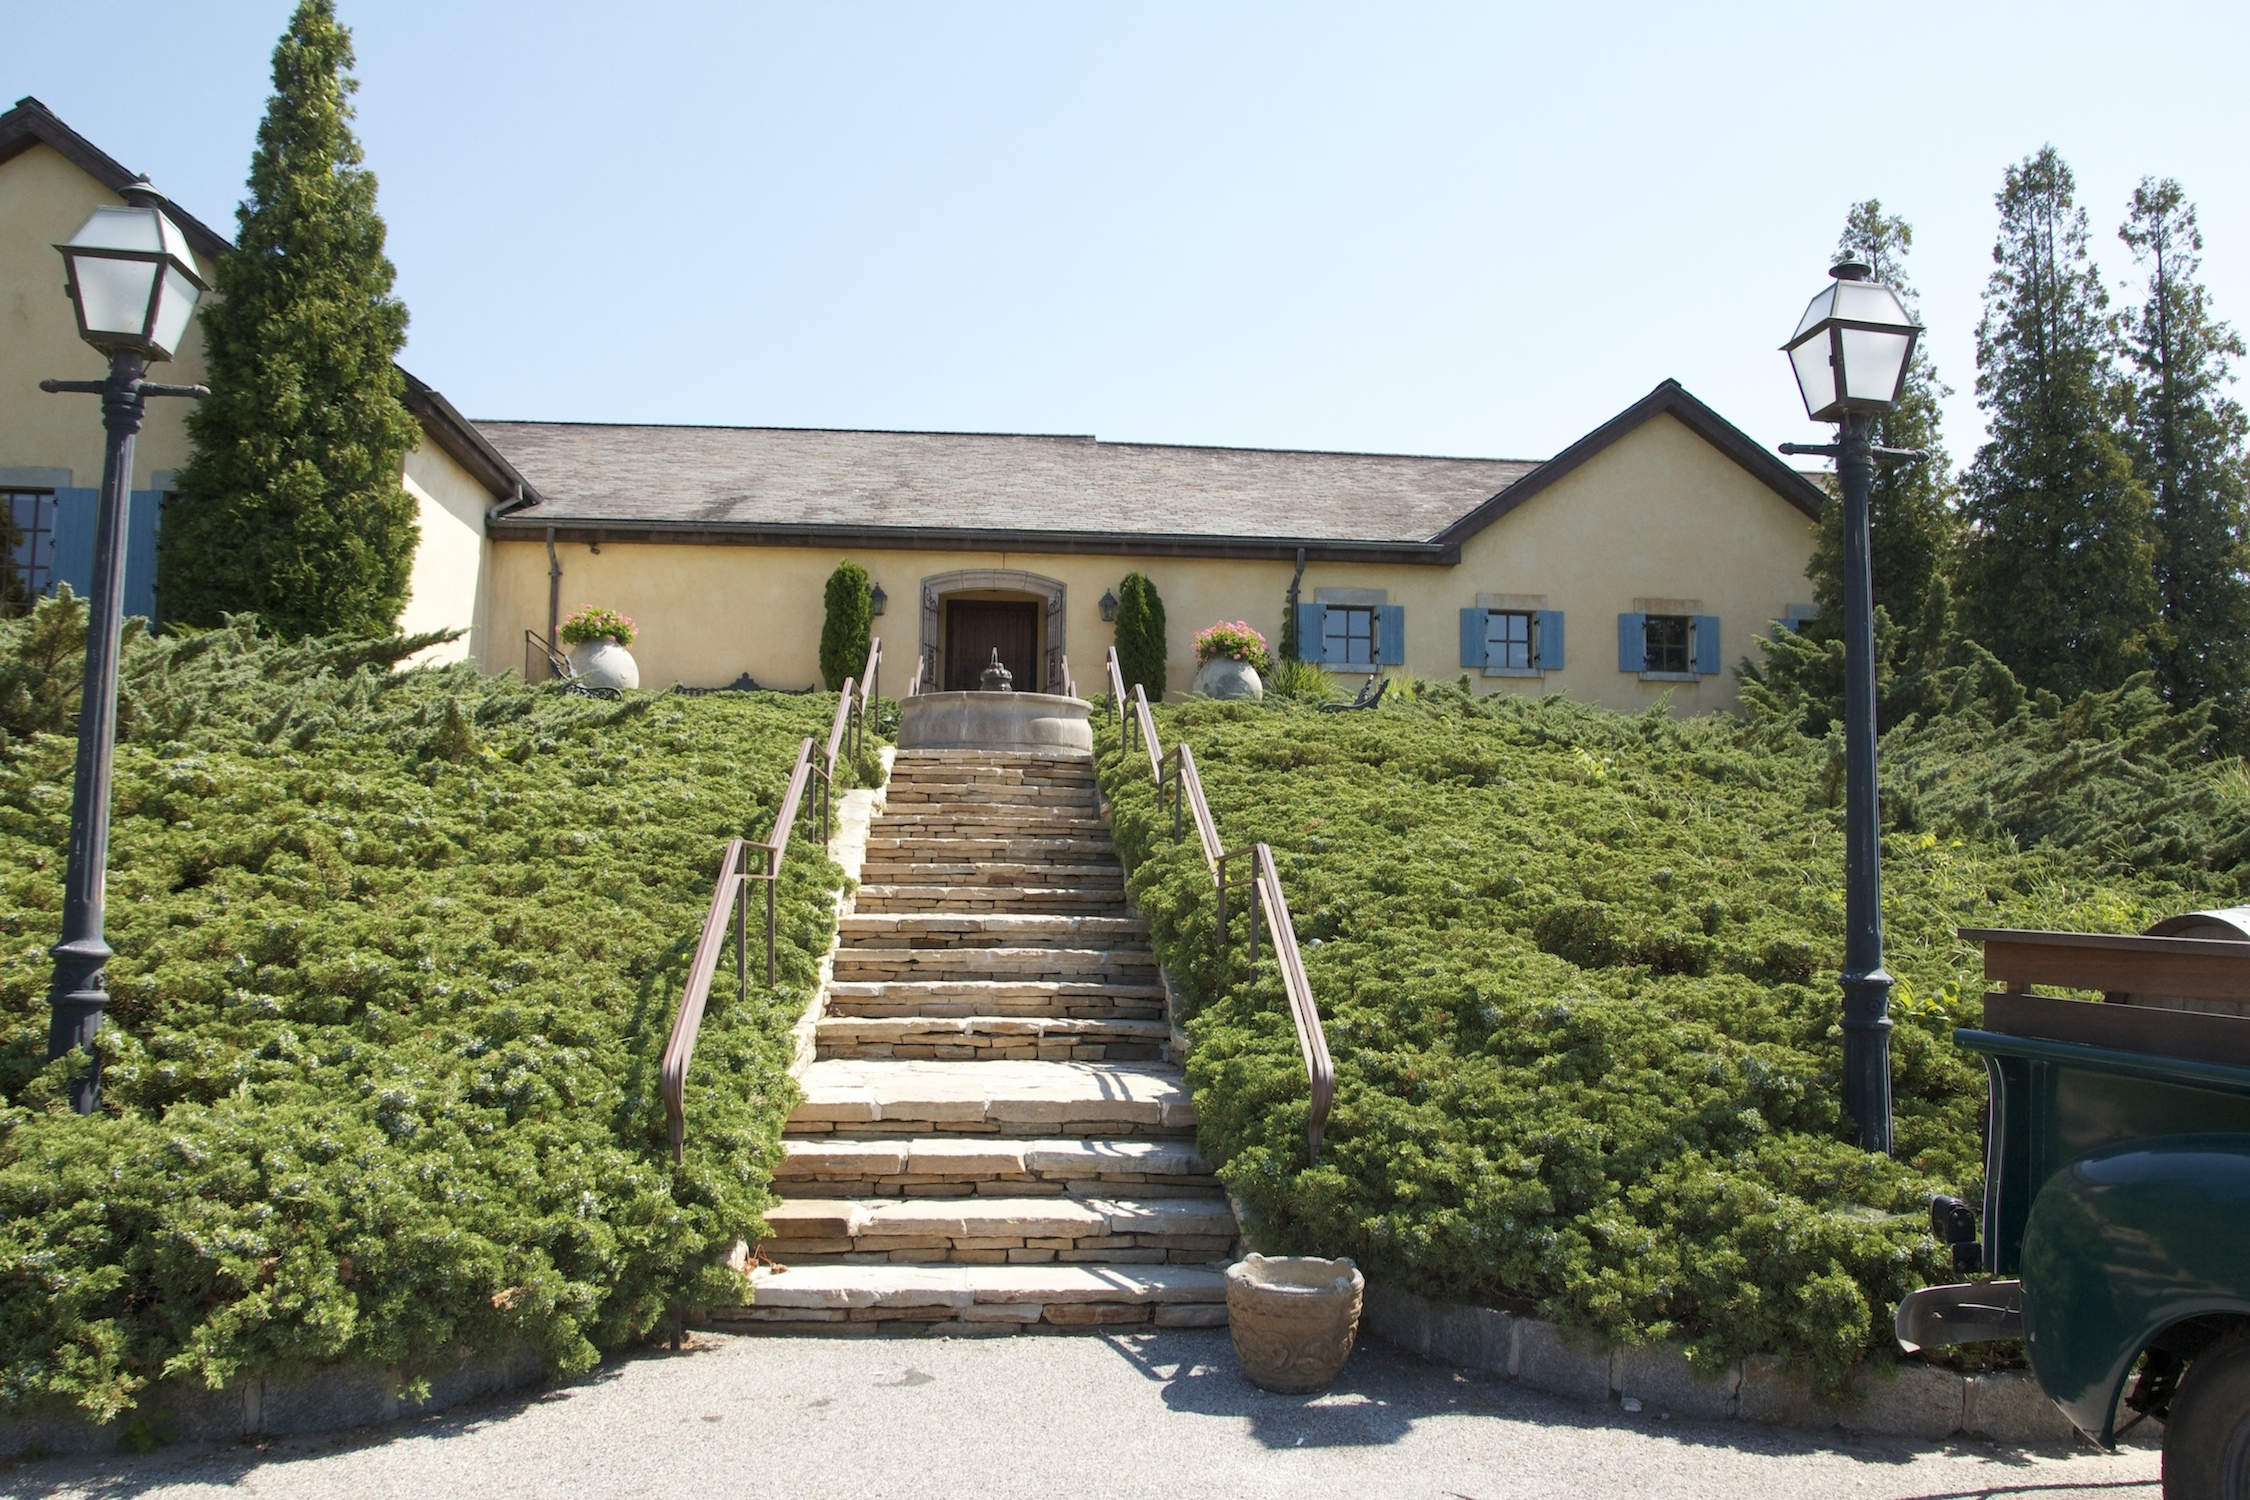 Christian Wölffer purchased a 14-acre parcel of land in 1978 that would later become the 55-acre Wölffer Estate Vineyard.